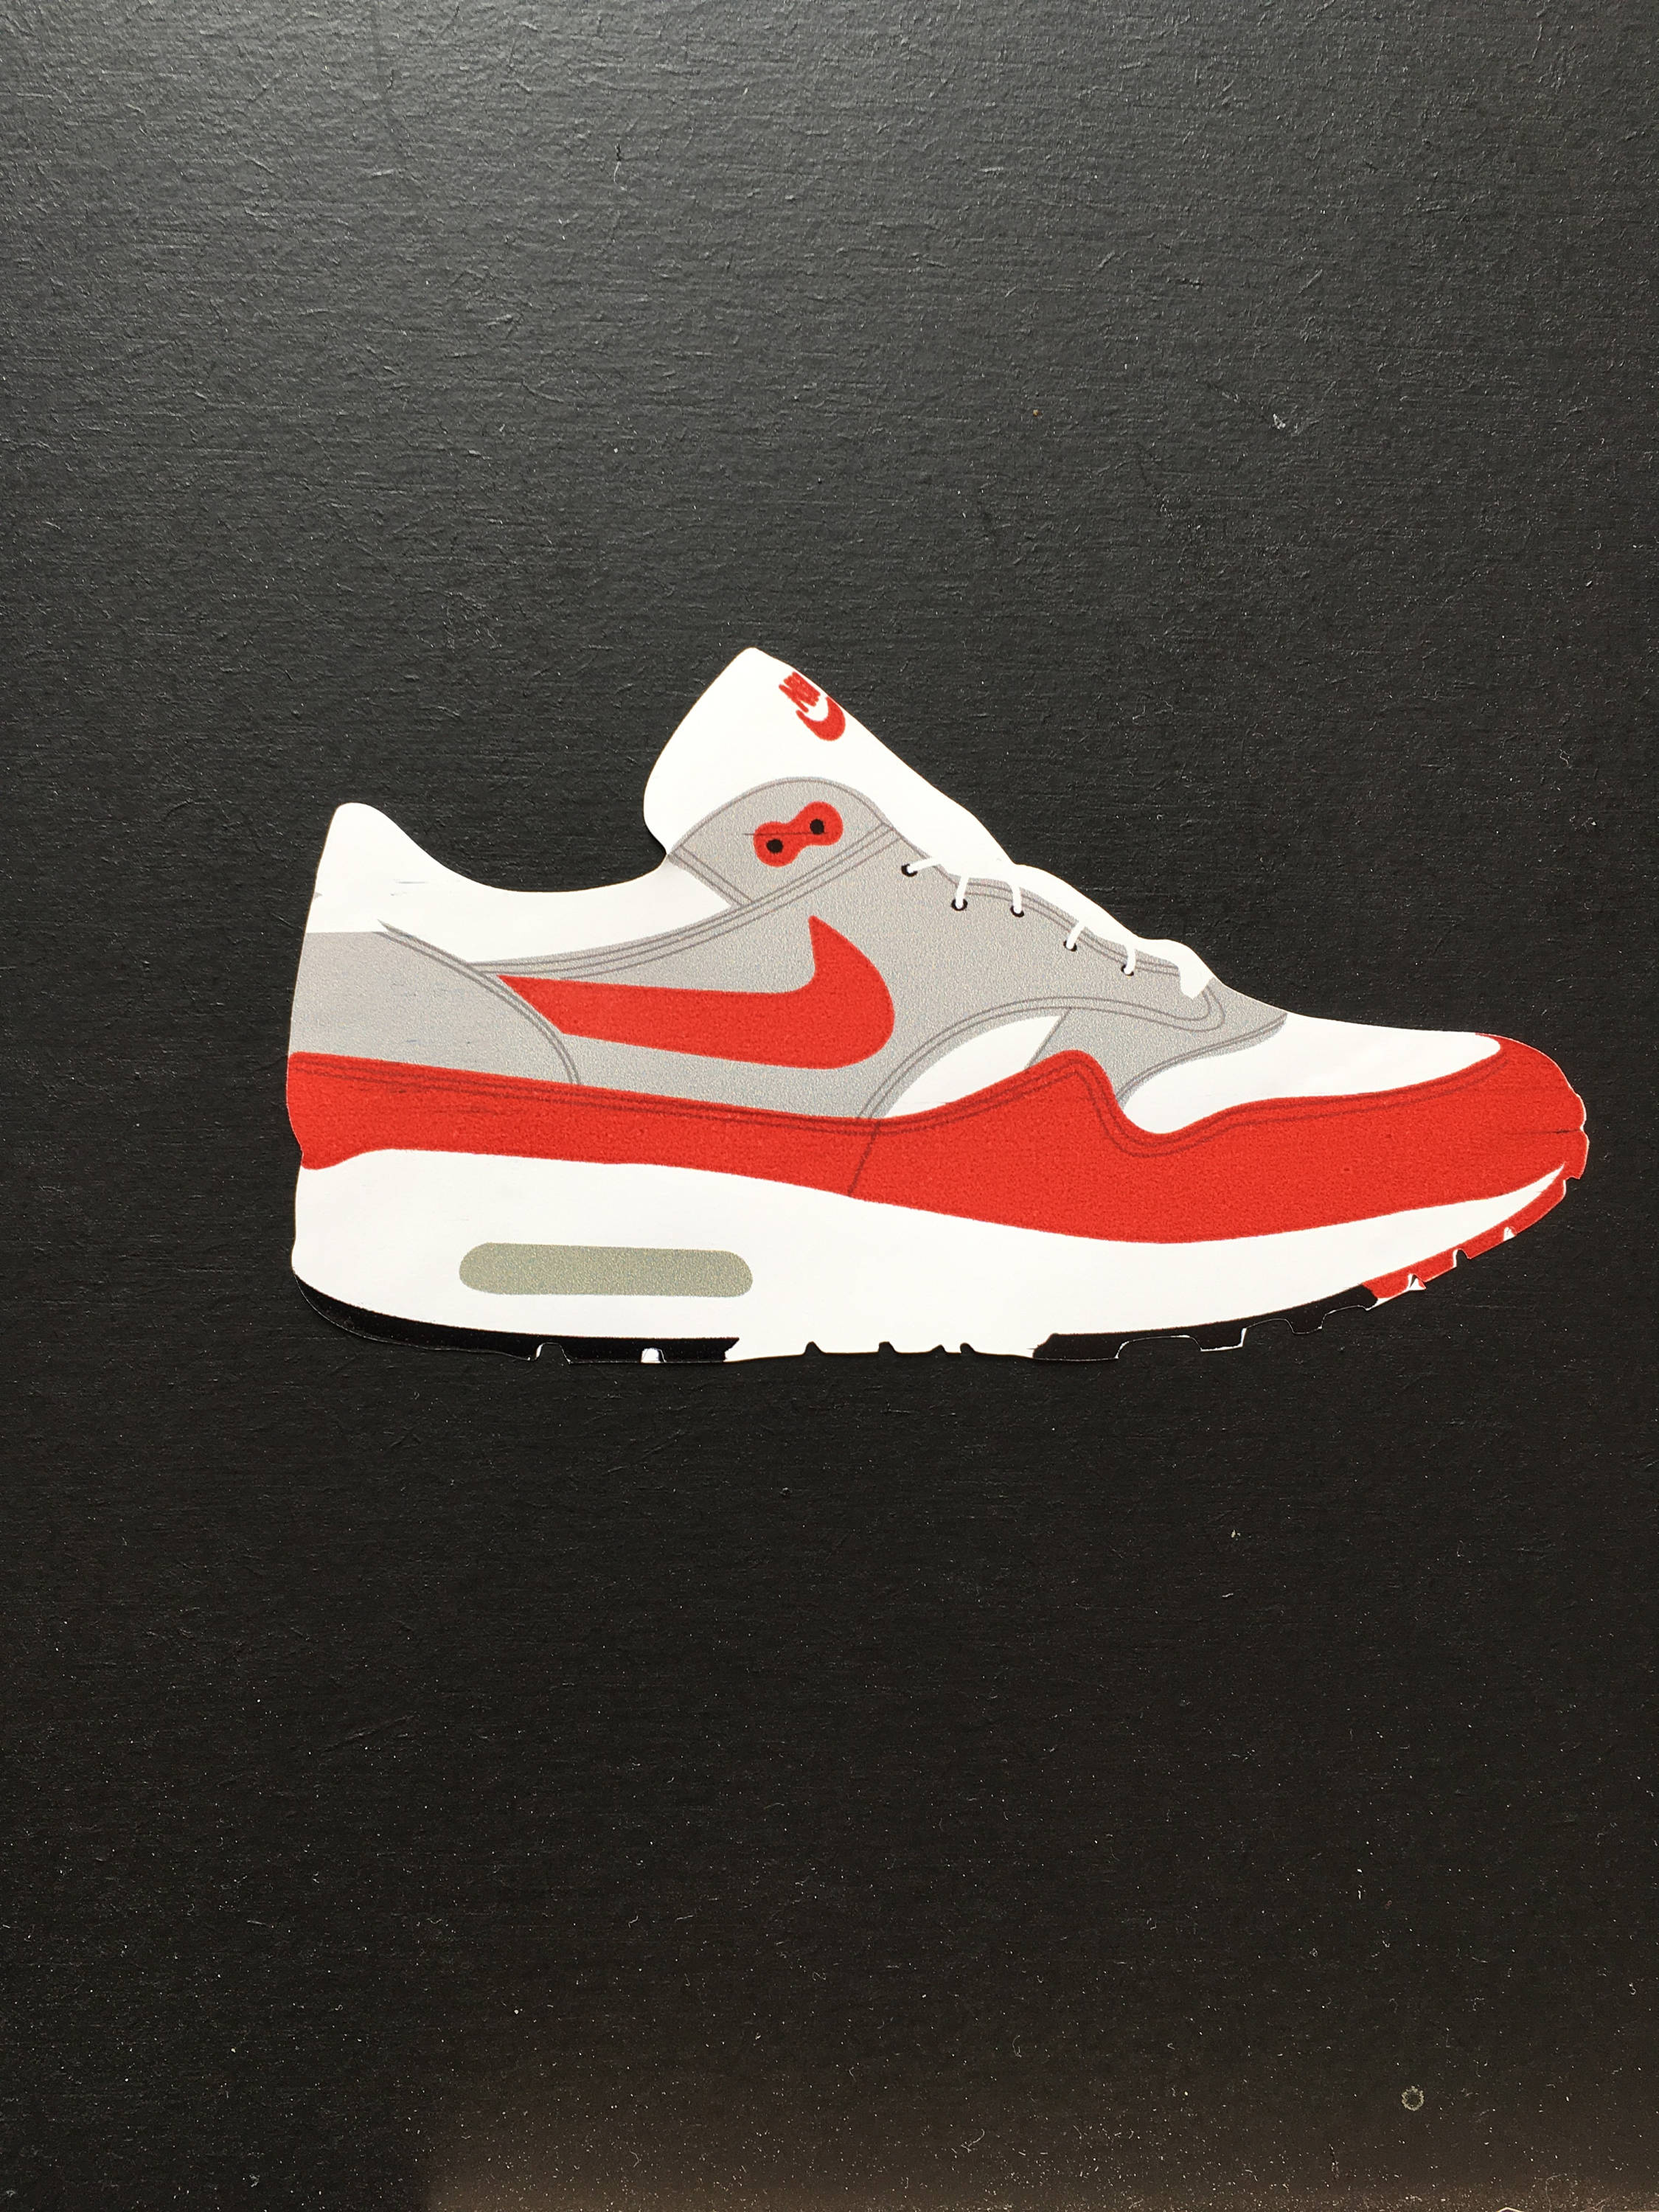 new arrival 93596 148f4 Nike Air Max 1 Red OG Sticker   Etsy